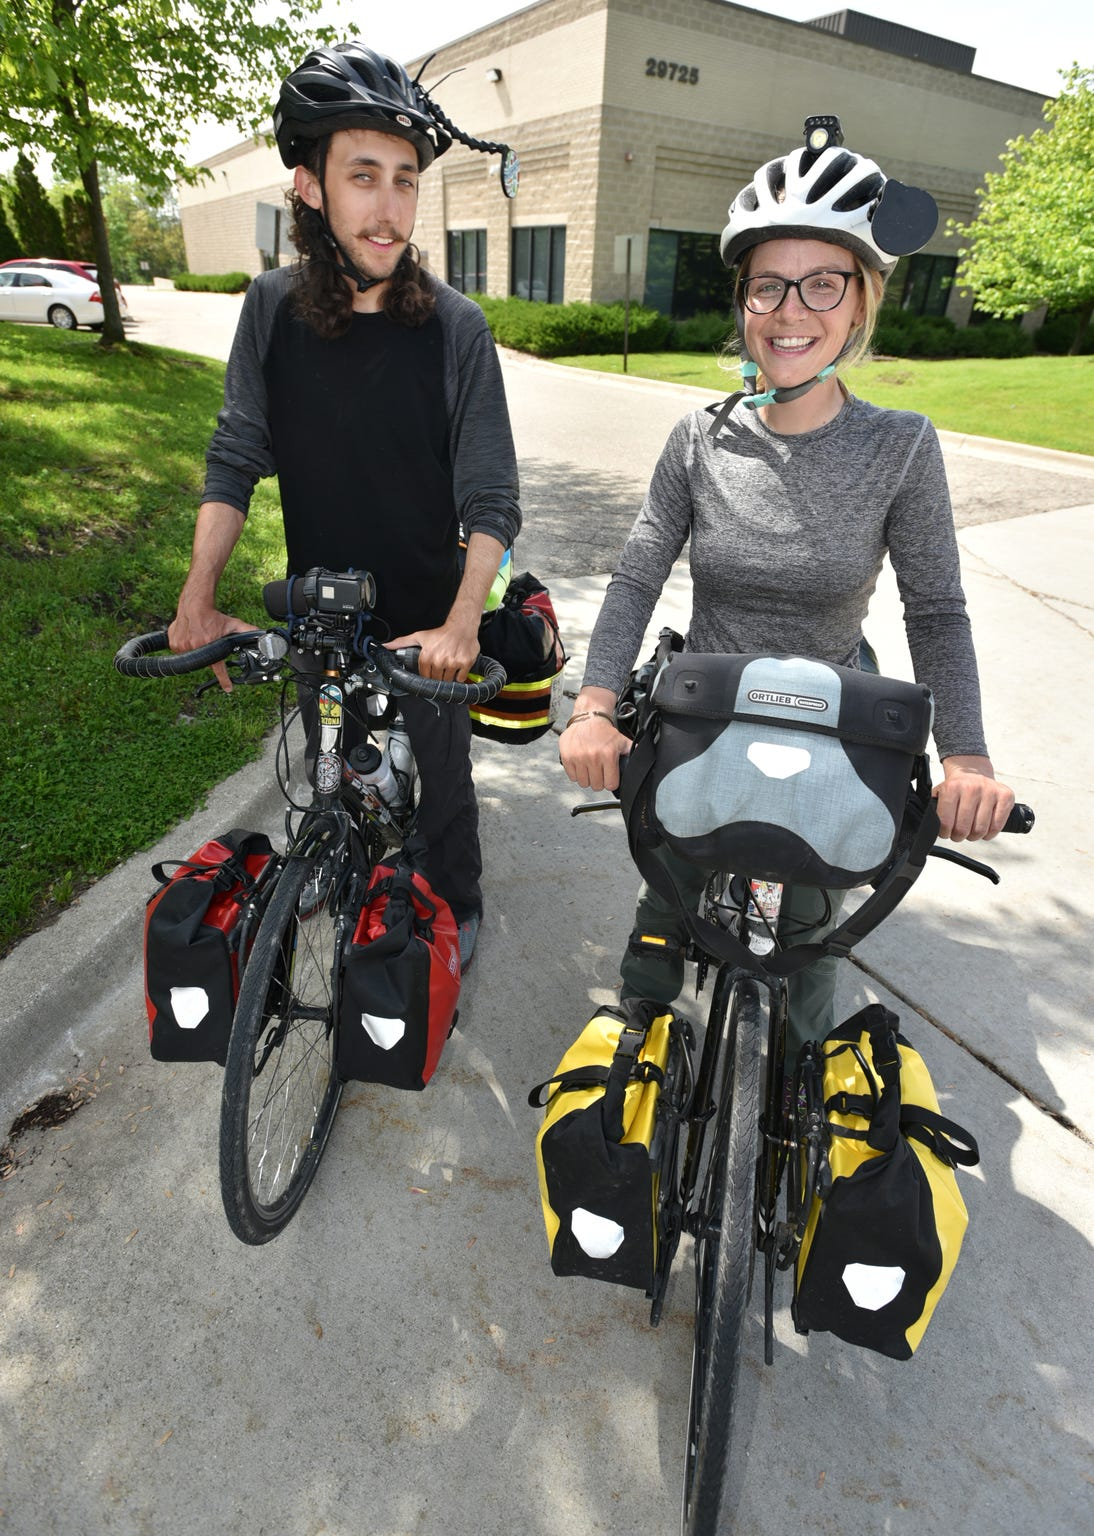 Novi native Lauren Harrington and her boyfriend Daniel Thakur are biking from coast to coast this summer, starting in Maine and ending up in the state of Washington. Here they pause for a moment in their journey near Novi's Beck Road just north of I96.